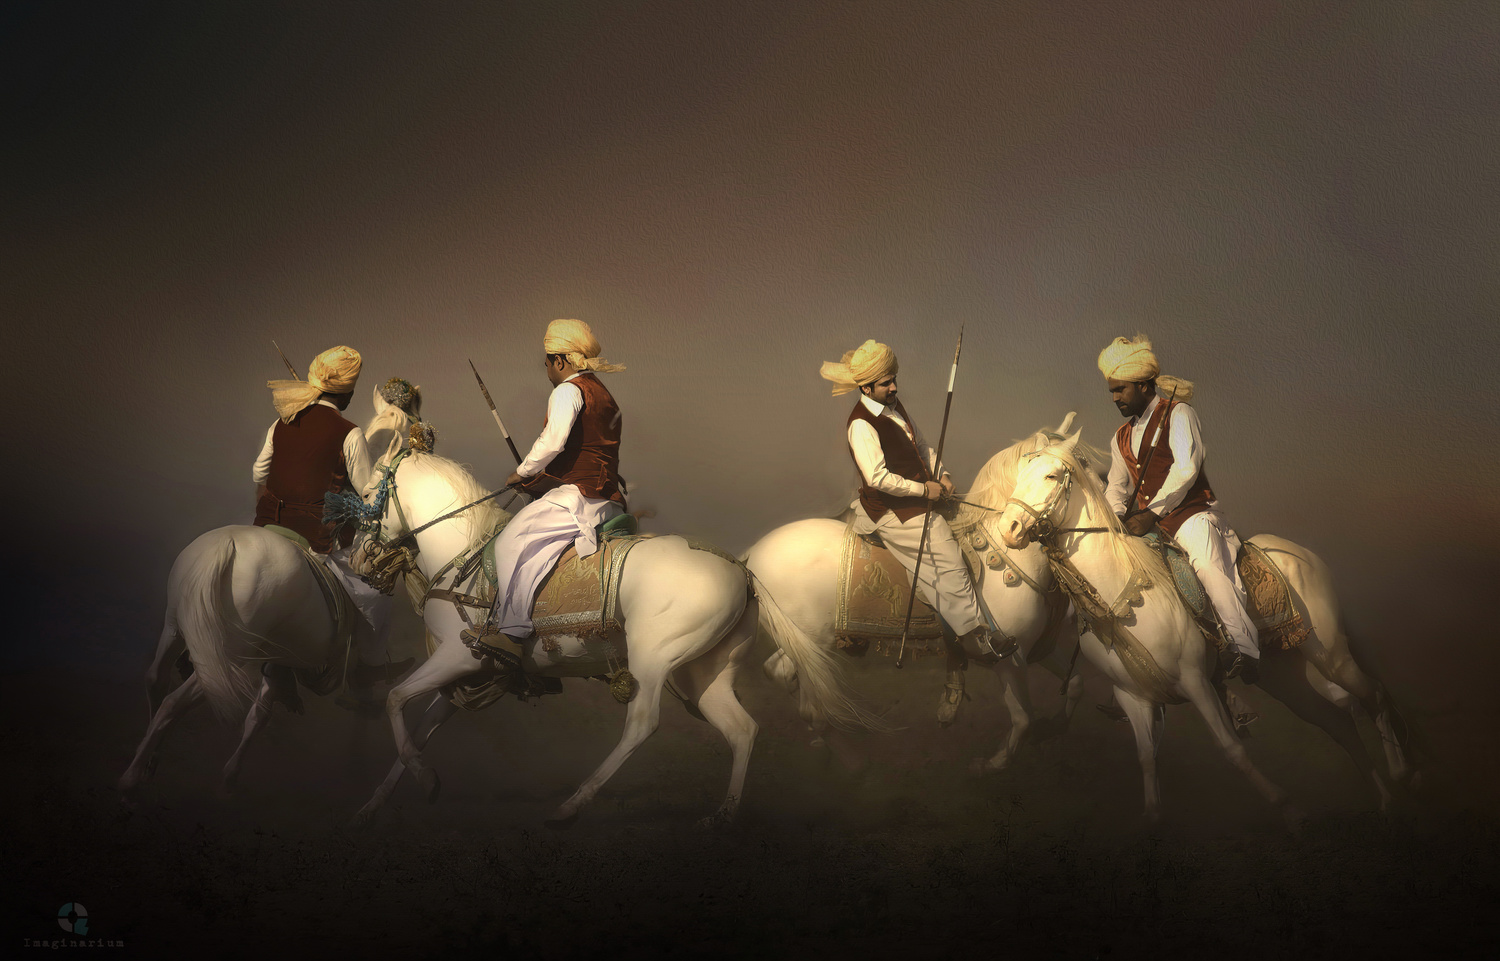 The Tent Peggers by Navid Qureshi